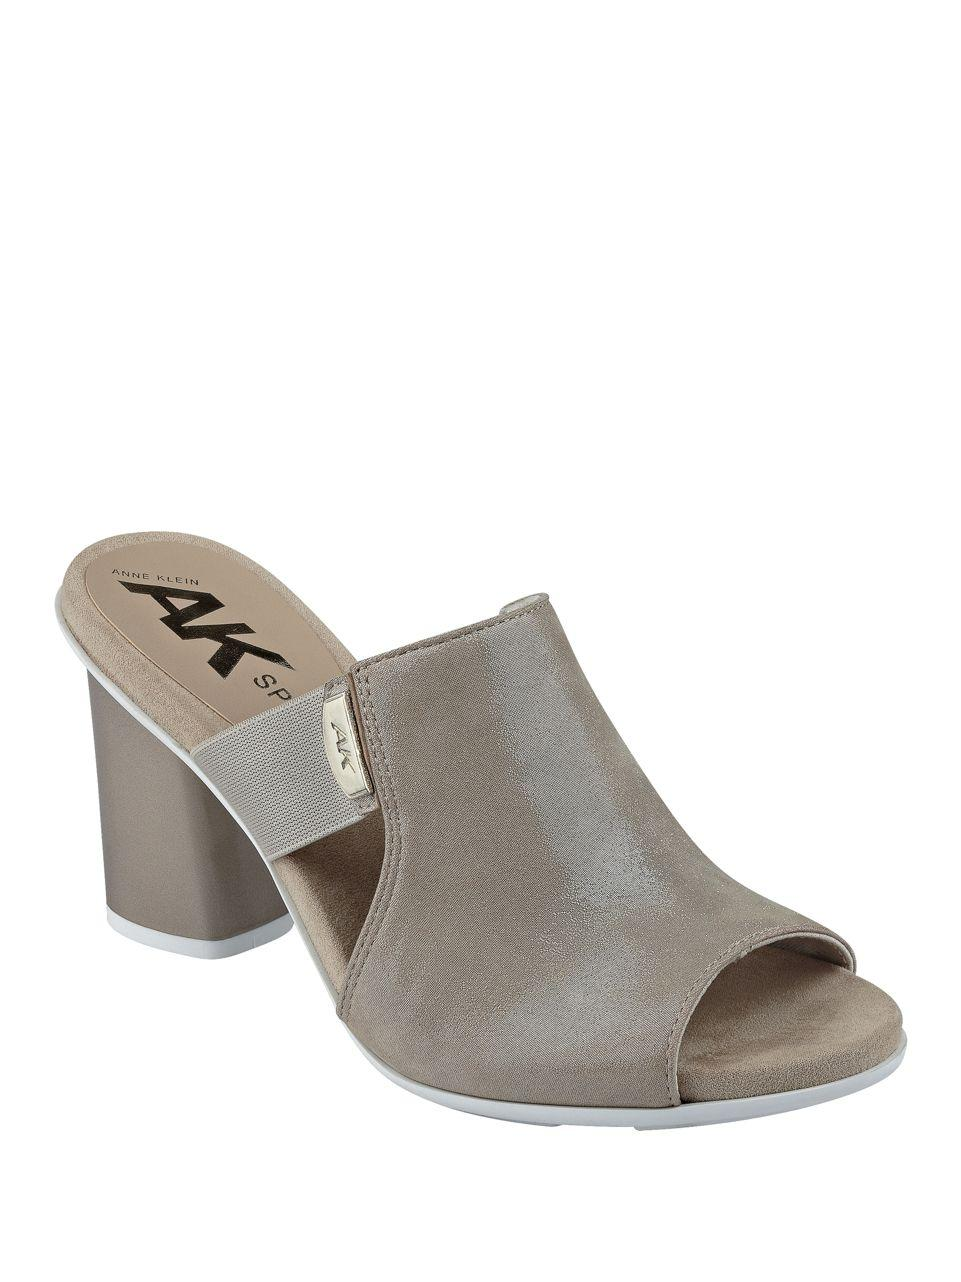 Anne Klein Block Mules Shoes For Women